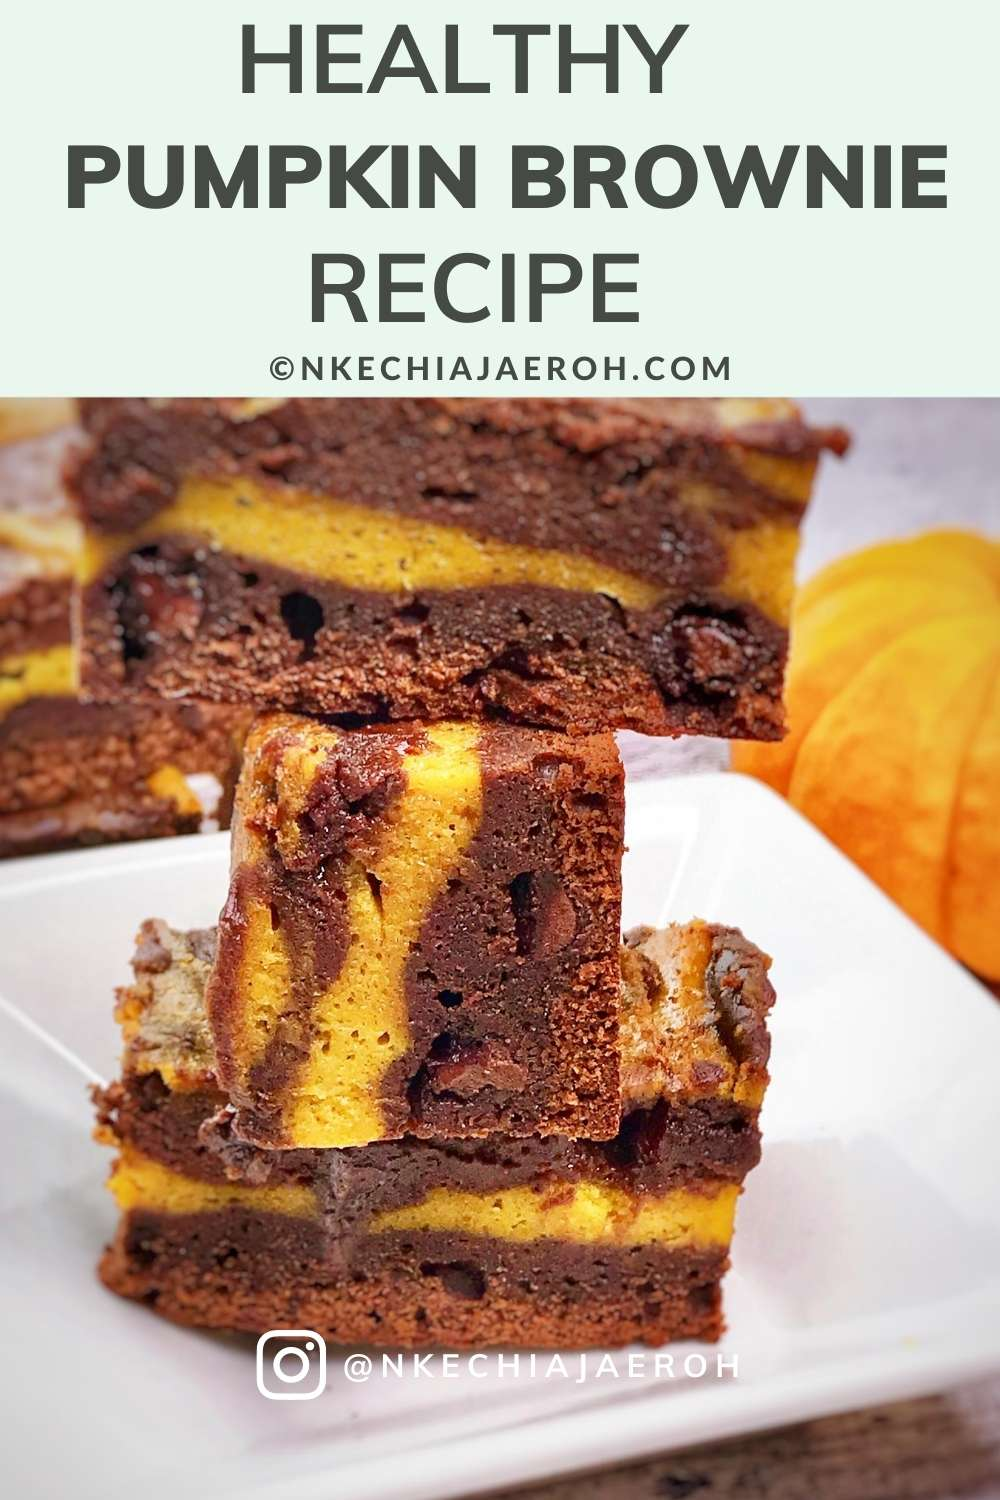 Healthy and delicious Pumpkin Brownies Recipe. This recipe is sugar-free, low carb, chocolatey, and a healthier version of your beloved pumpkin brownie. Easy to make fall season treats, this pumpkin swirled fudgy pumpkin brownies are comforting and satisfying. These healthier fudgy brownies are made with real homemade pumpkin purée (roasted and pureed by yours truly). #Pumpkin #Pumpkinseason #falldessert #pumpkinbrownies #Healthypumpkinbrownie #Healthybrownierecipe #healthydessert #Thanksgiving